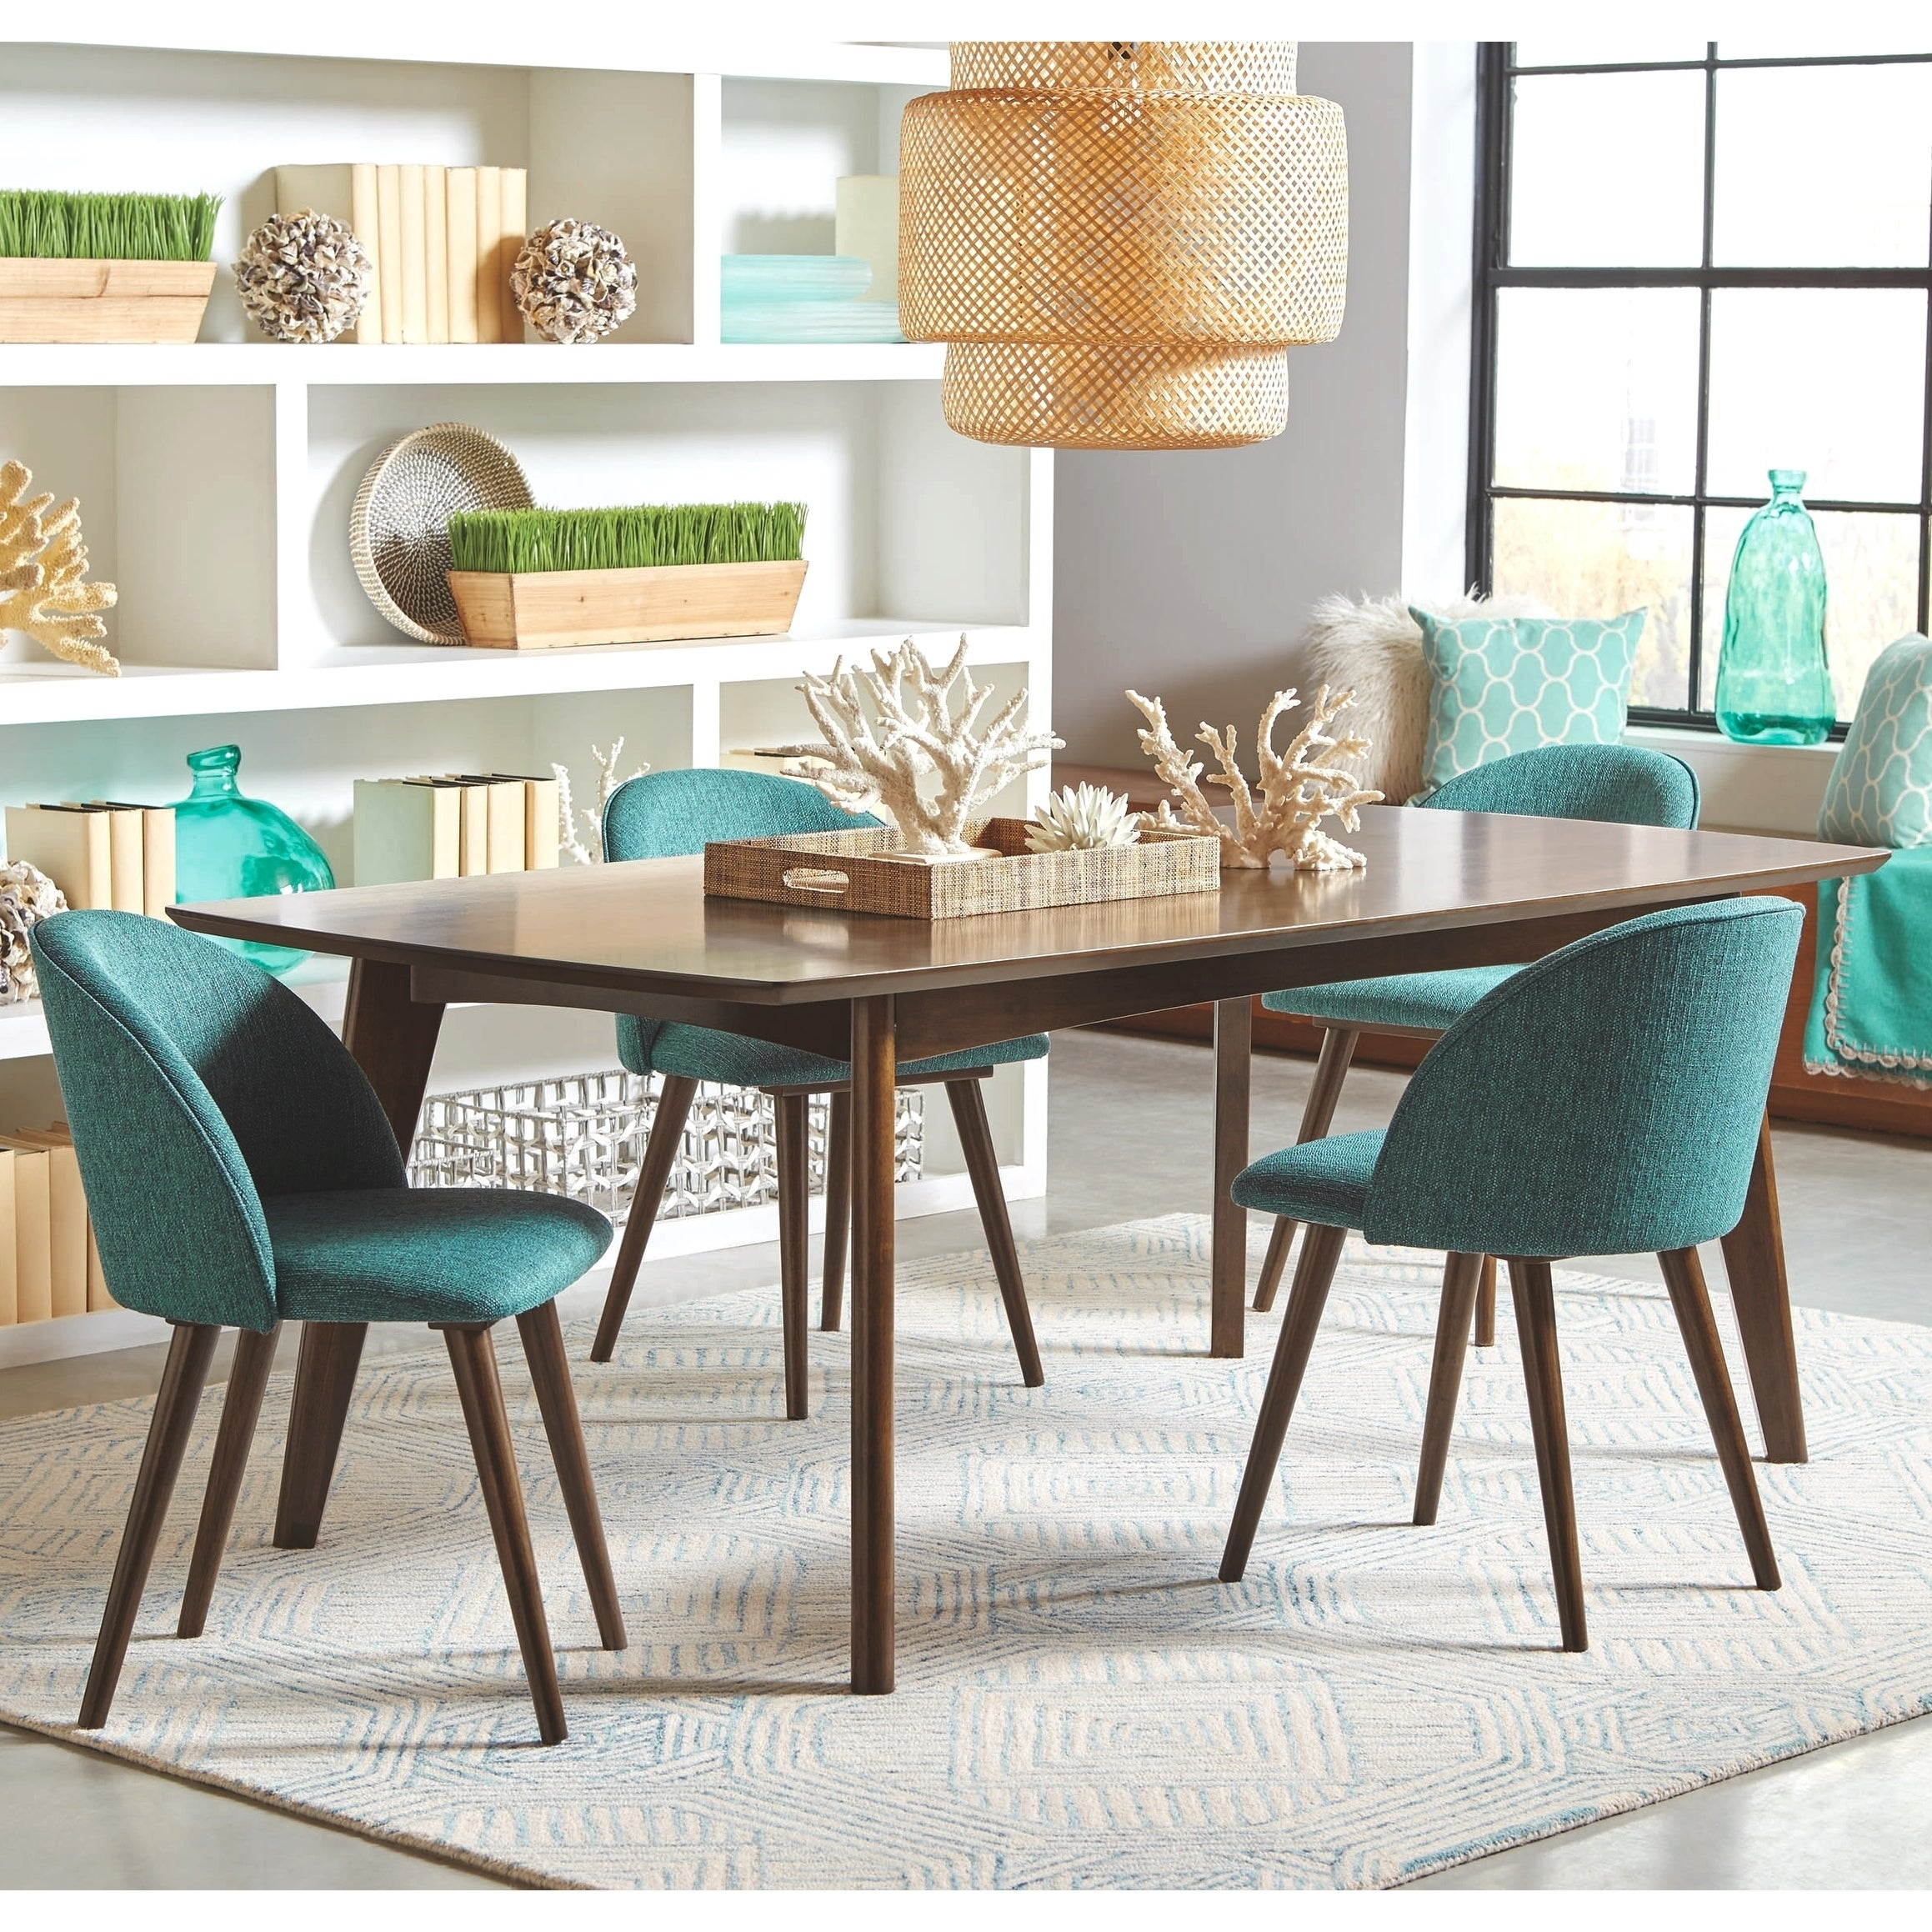 Mid Century Danish Design Dining Set With Aqua Upholstered Chairs